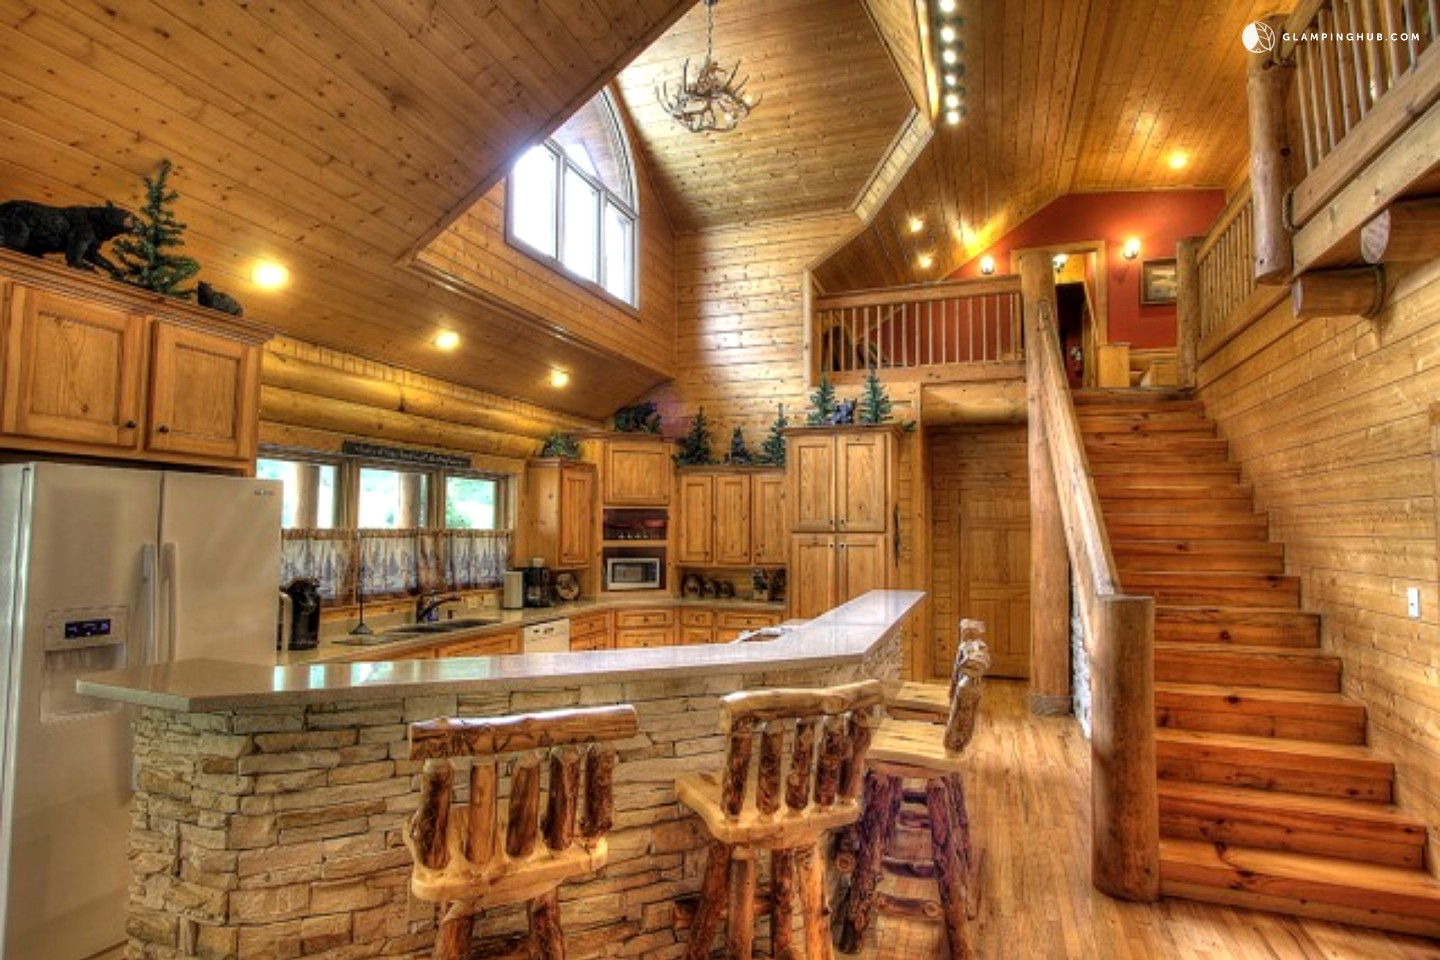 Luxury cabin rental near the great smoky mountains for Smoky mountain tennessee cabin rentals